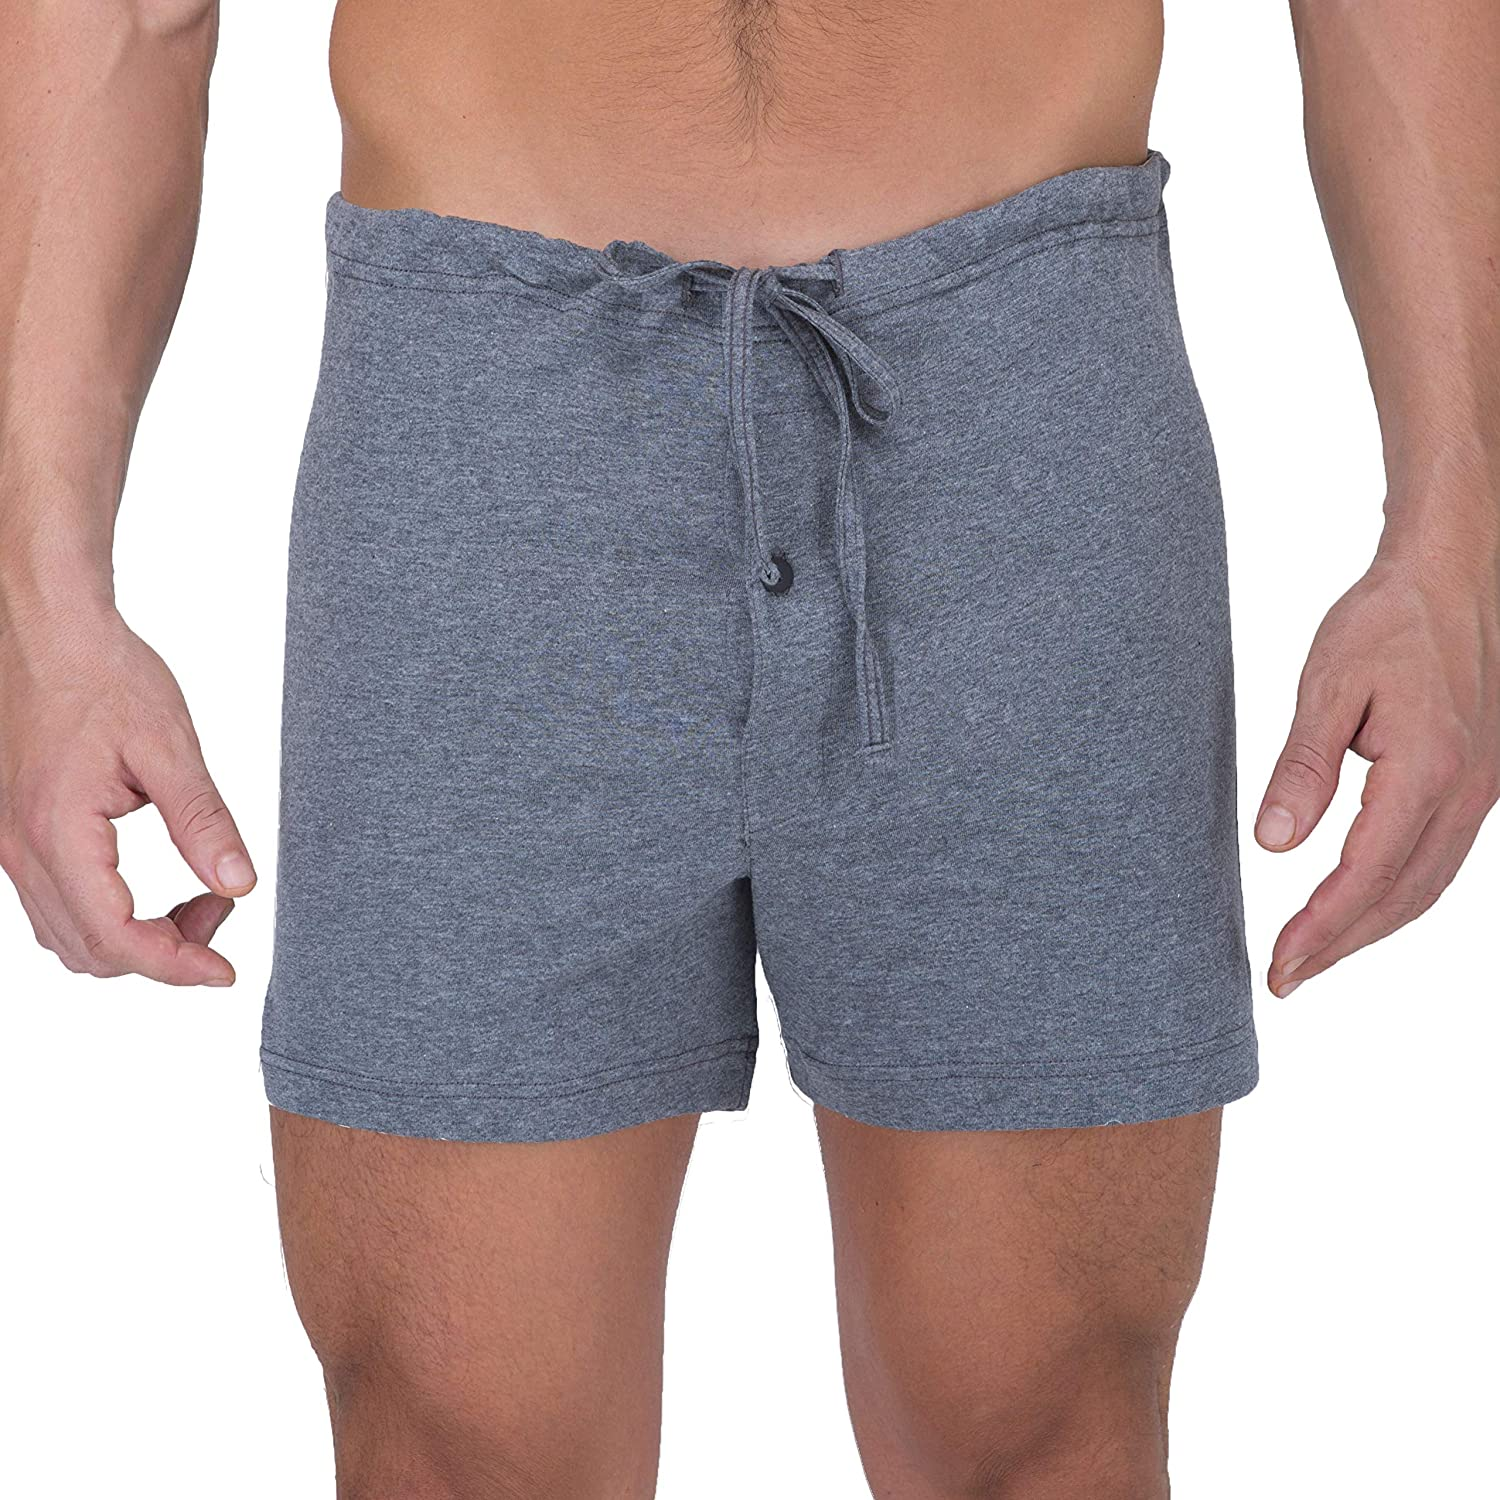 ae1a2d03a7f55 Cottonique Men s Latex-Free Drawstring Loose Boxer Short made from 100%  Organic Cotton M17713